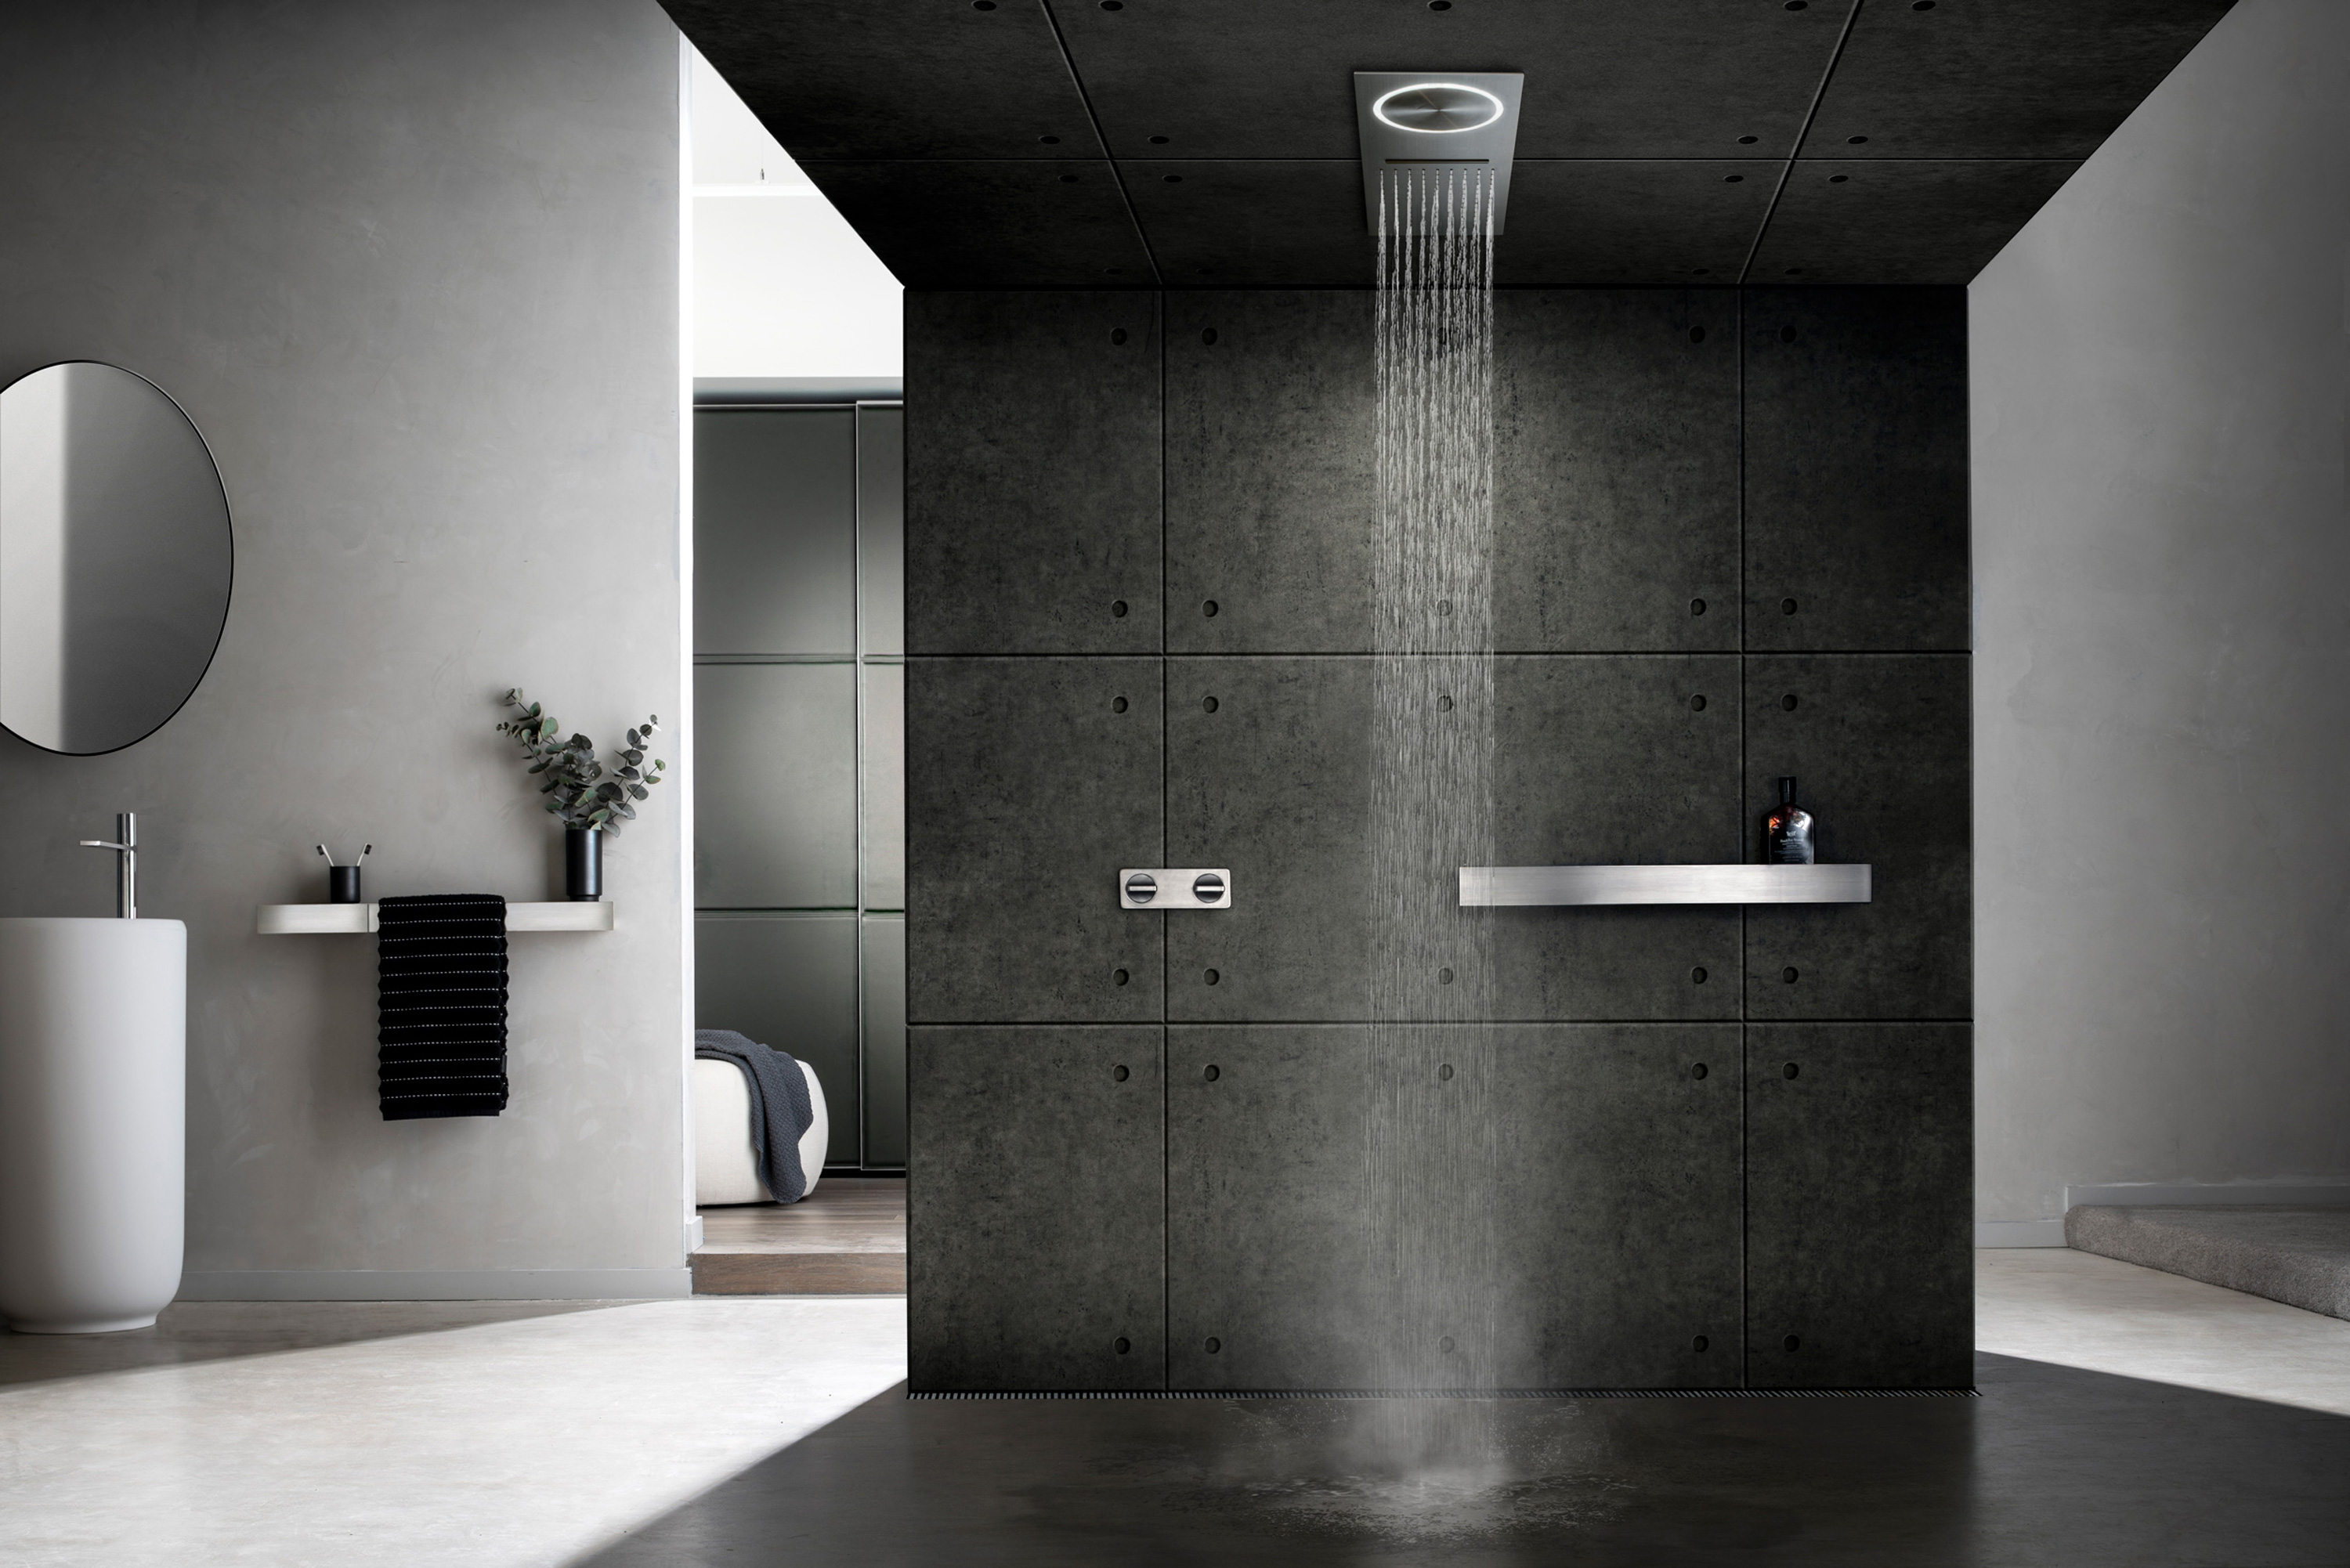 Tectonic Showerhead Rogerseller - HEY GENTS